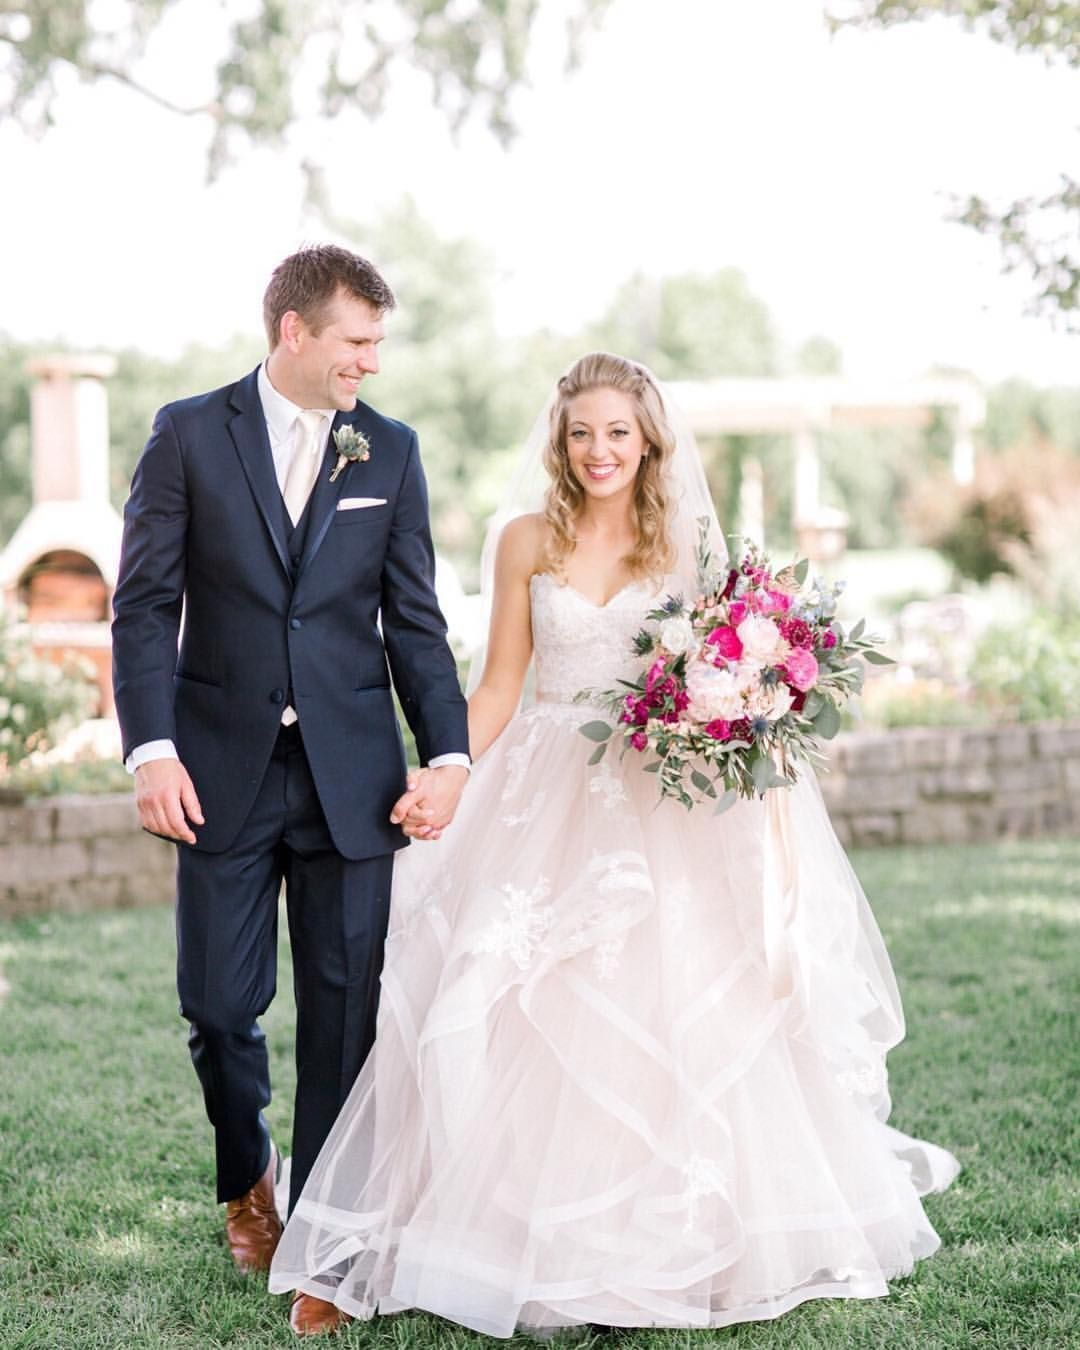 Wear your wedding dress on your anniversary  This couple her bouquet and that dress Dreamy  Come visit us